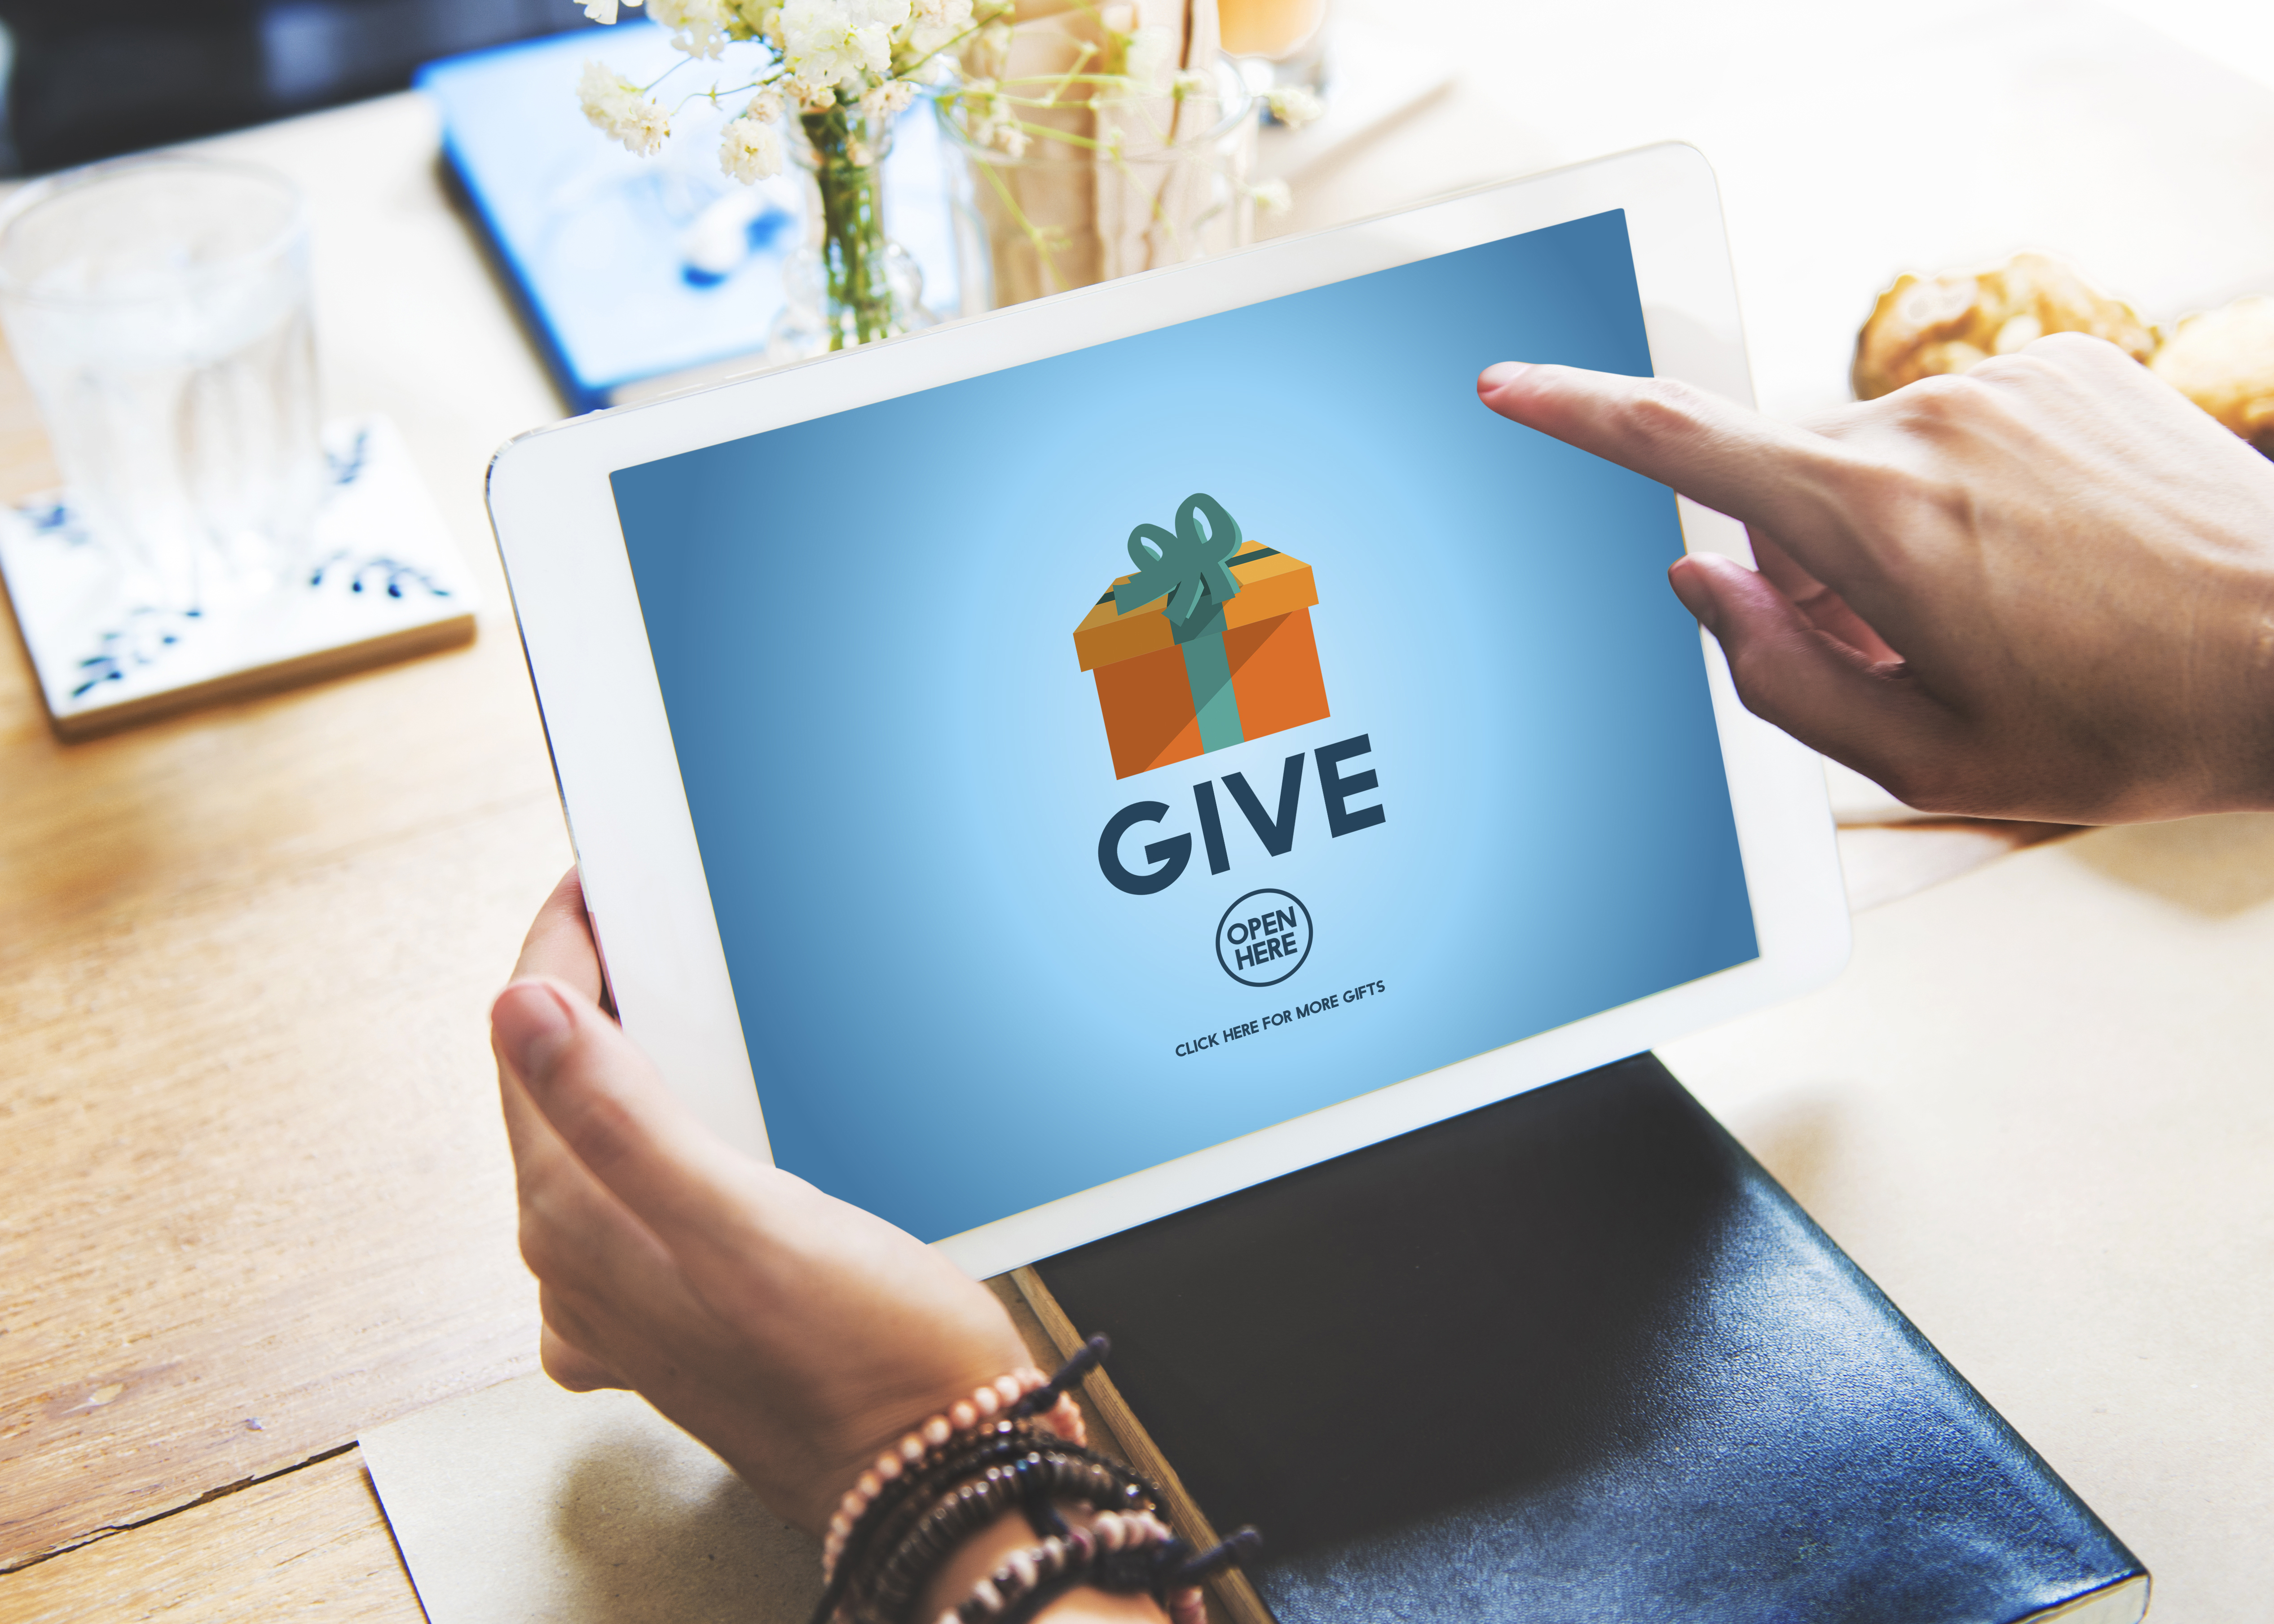 Charitable Giving Climbs in 2015, Online Donations Push Overall Growth